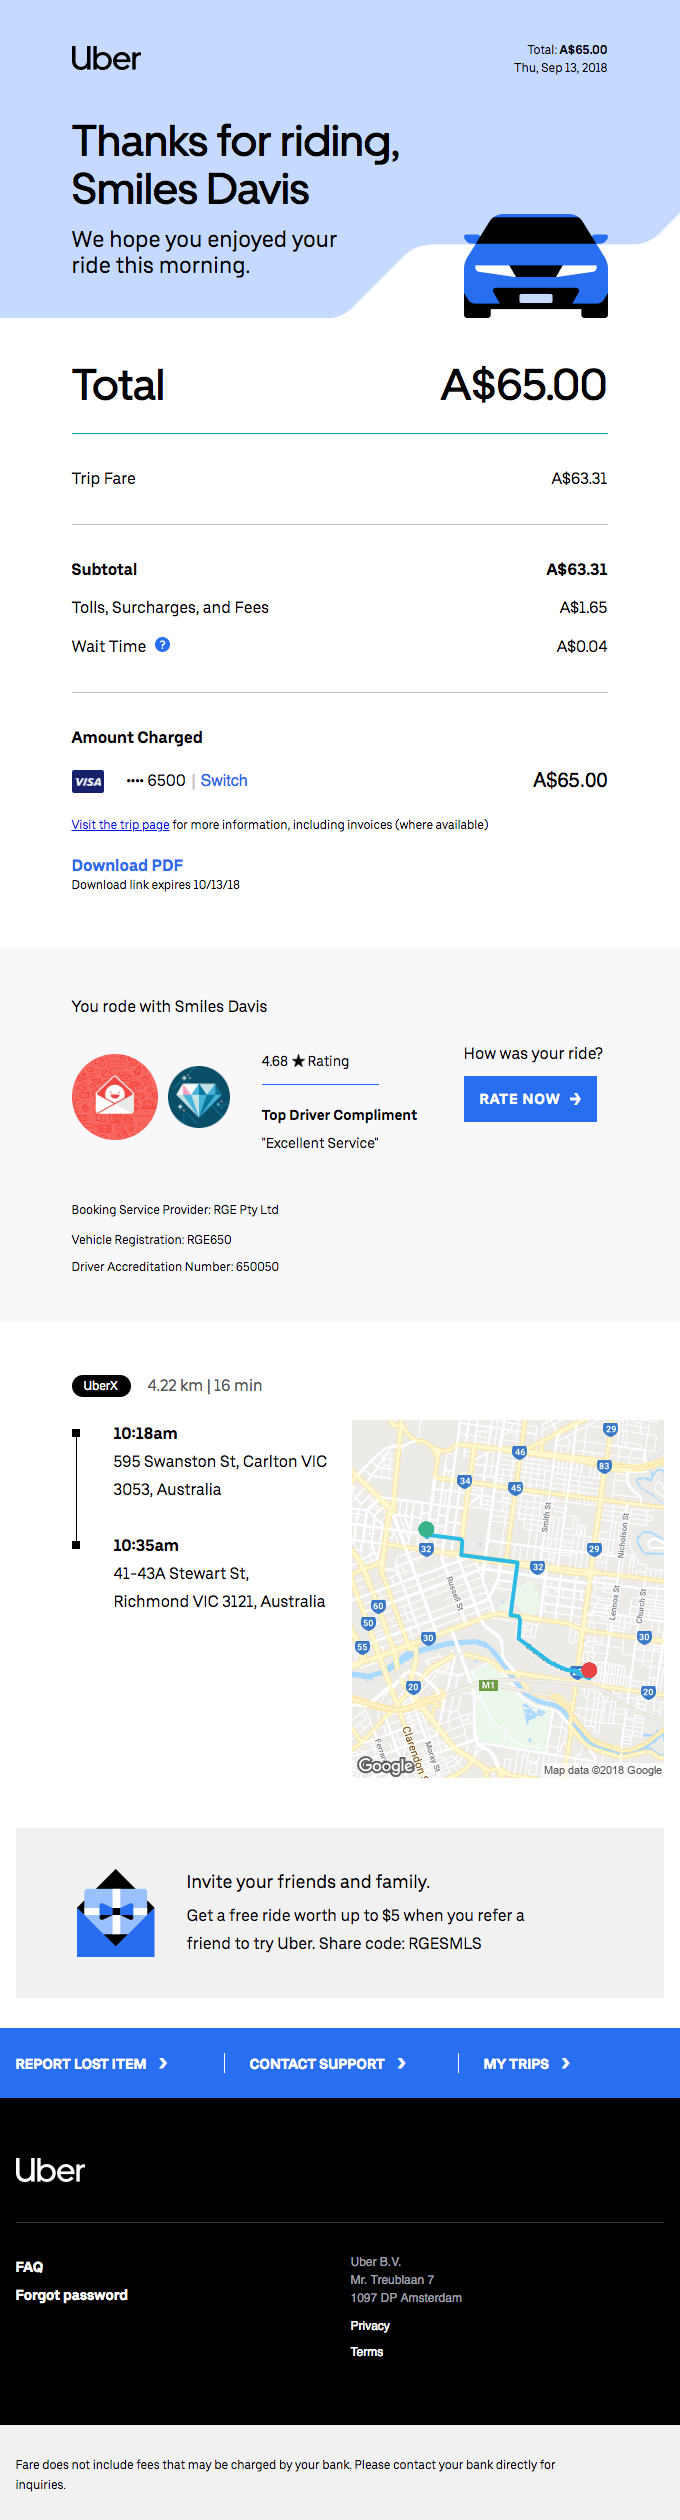 [Business] Your Thursday morning trip with Uber